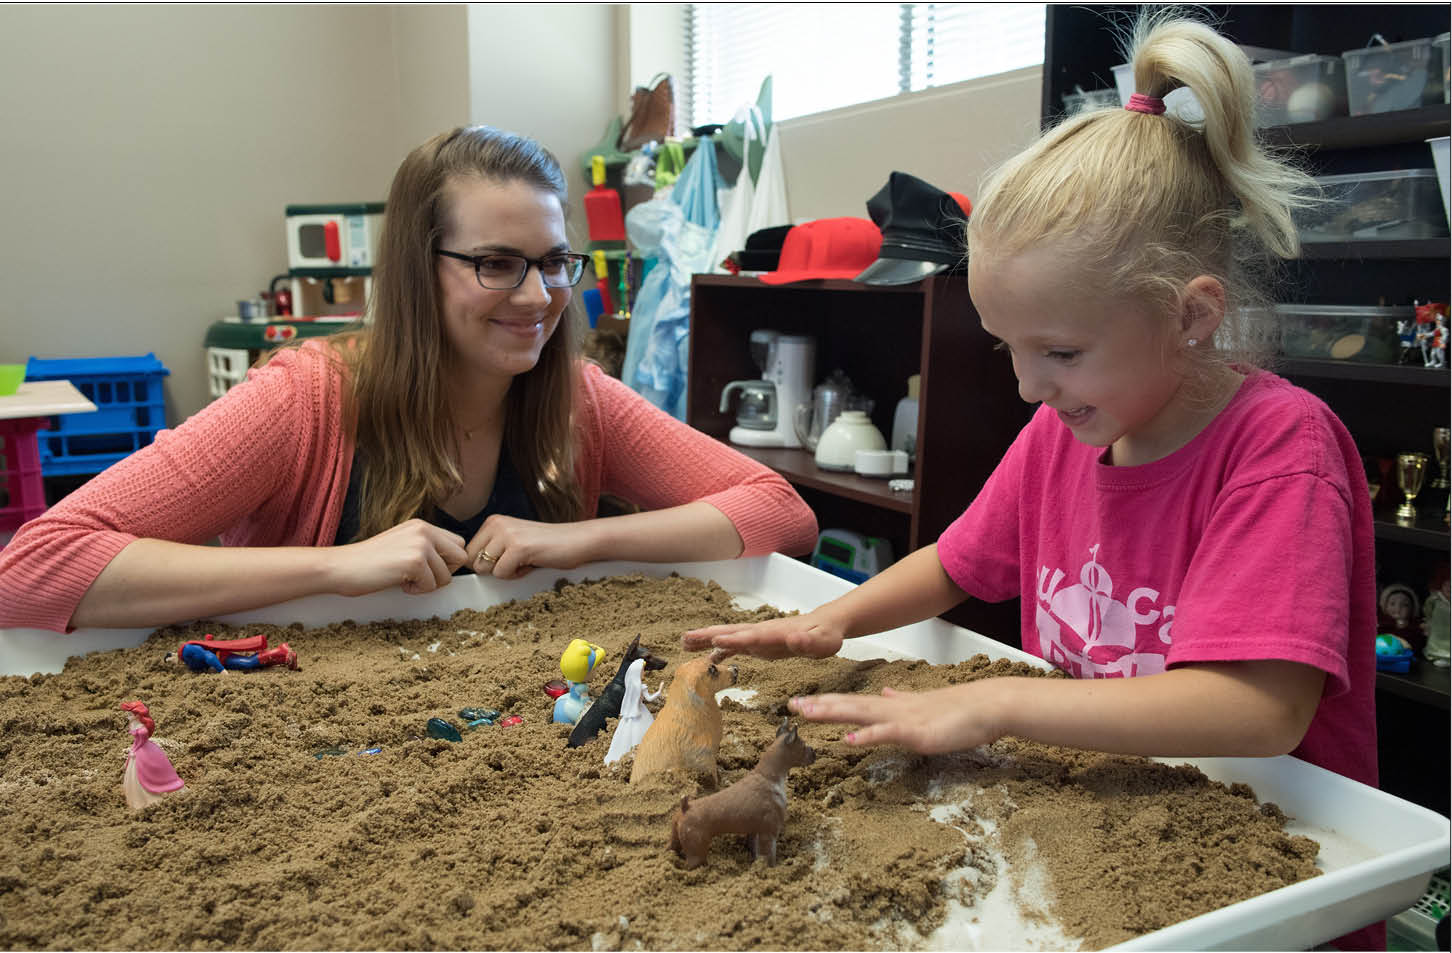 This is a photo of a school counselor using play therapy with sand